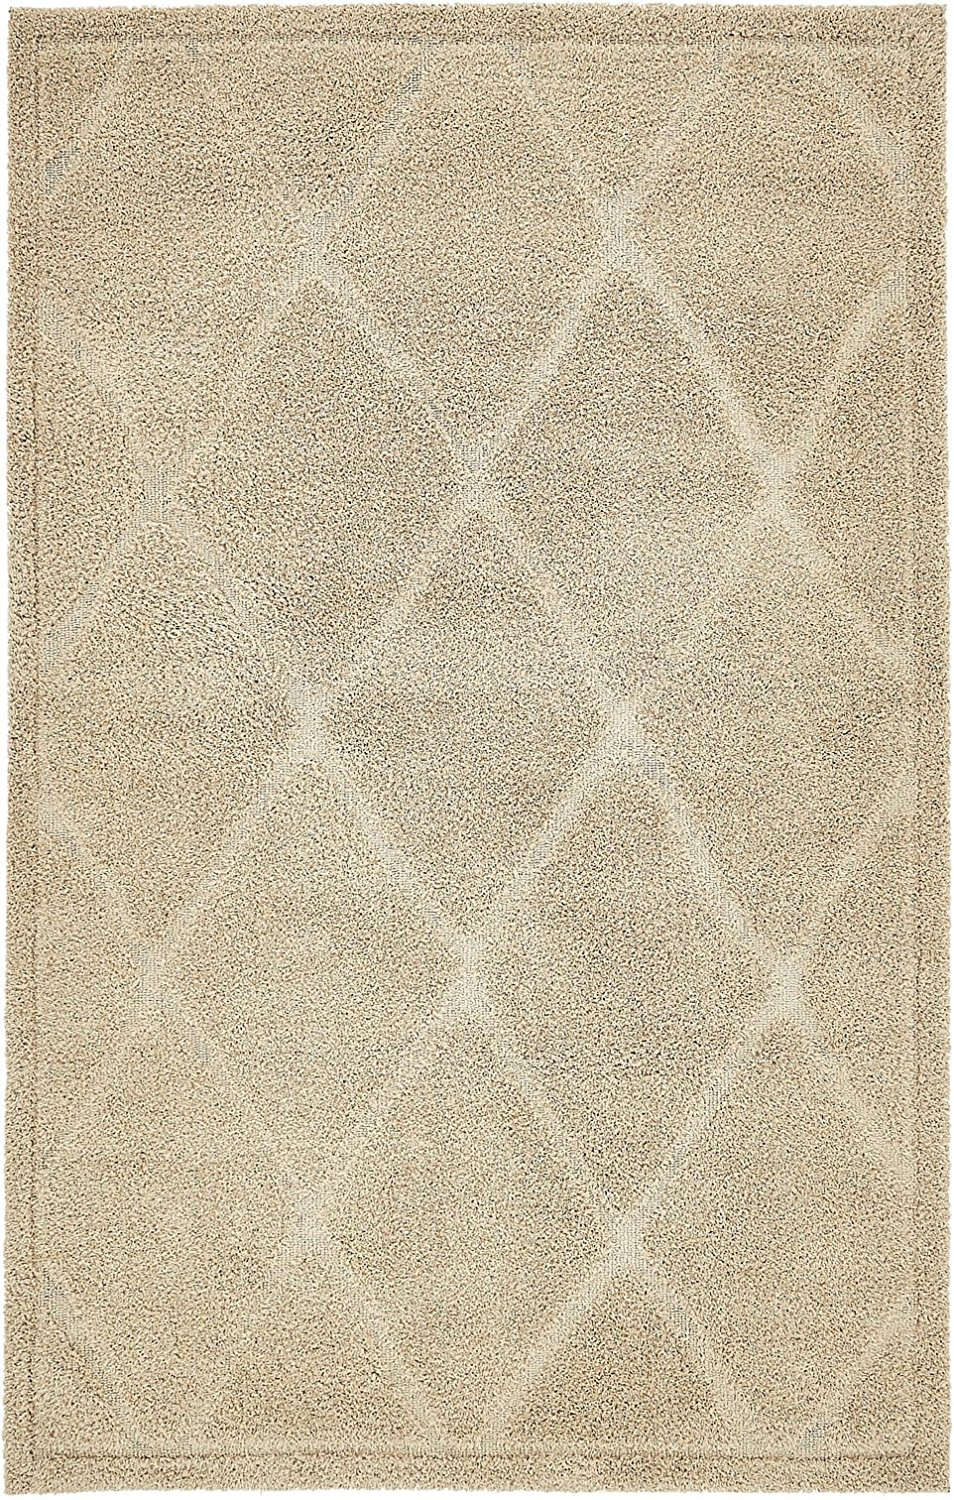 Cheap Contemporary Shag Area Rugs Find Contemporary Shag Area Rugs